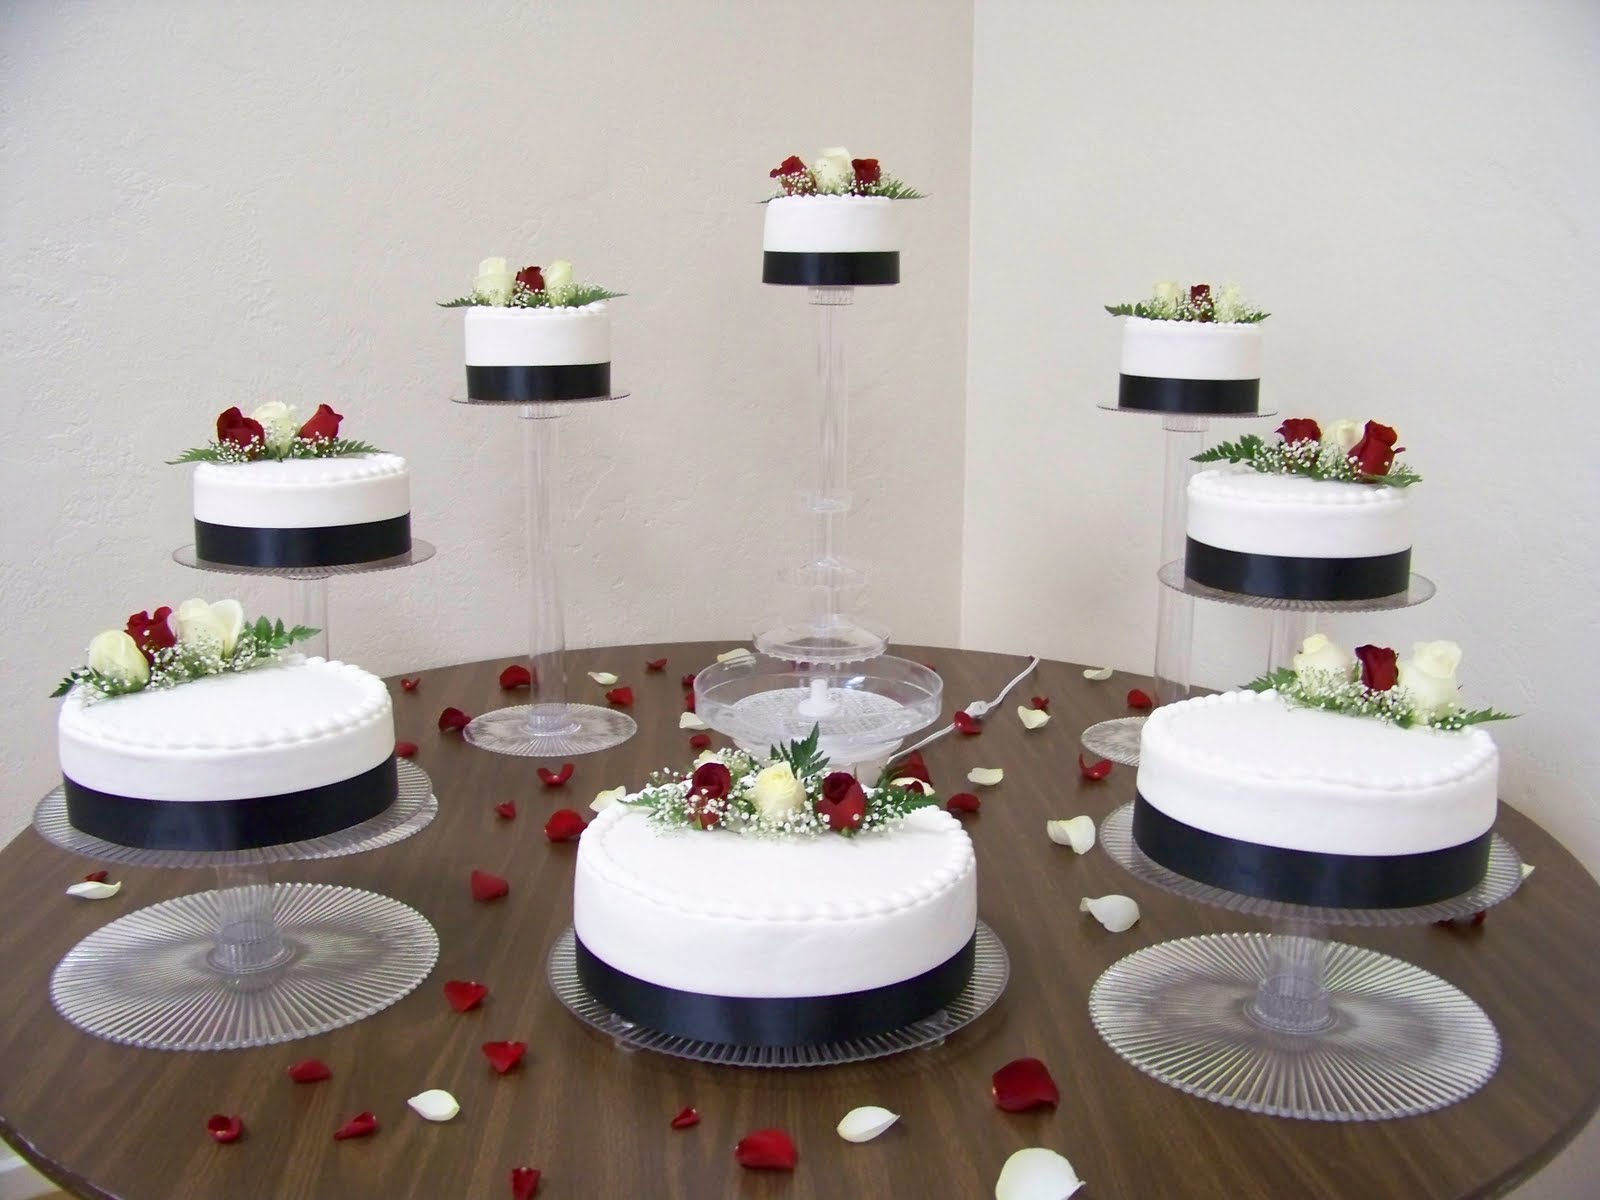 Wine Country Cakes: 8-Tier Wedding Cake